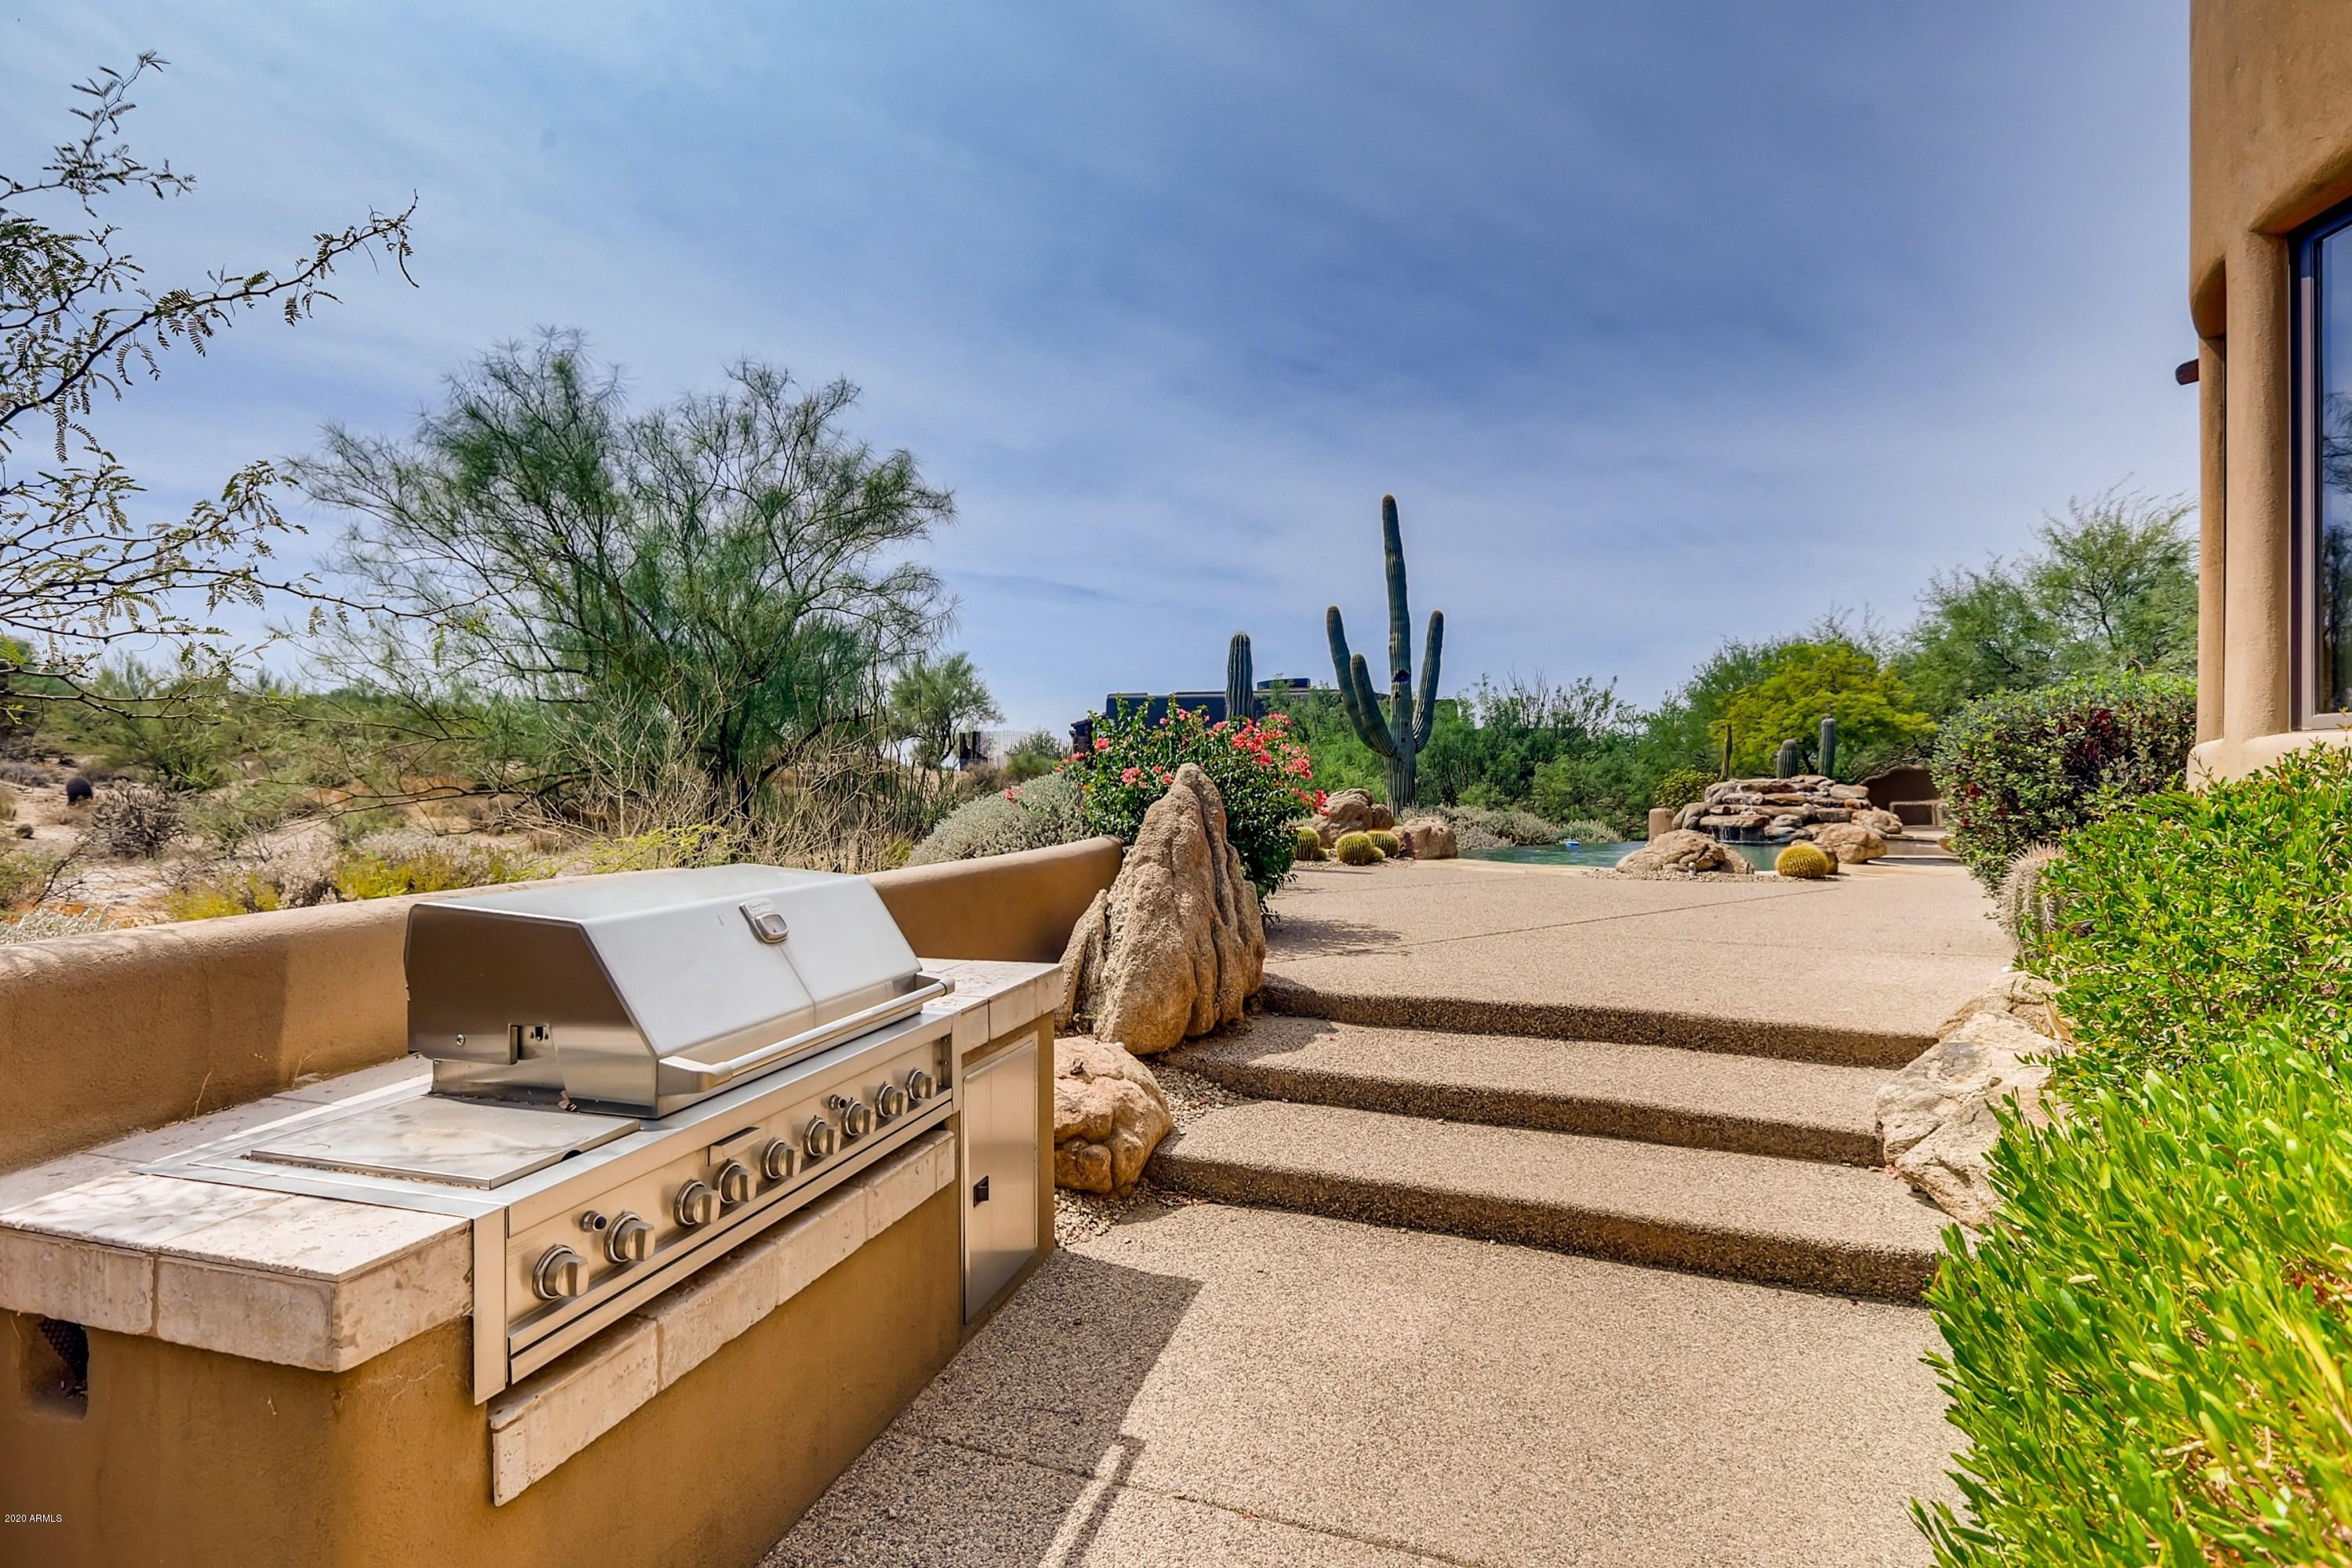 MLS 6130976 7723 E BLACK MOUNTAIN Road, Scottsdale, AZ 85266 Scottsdale AZ The Boulders